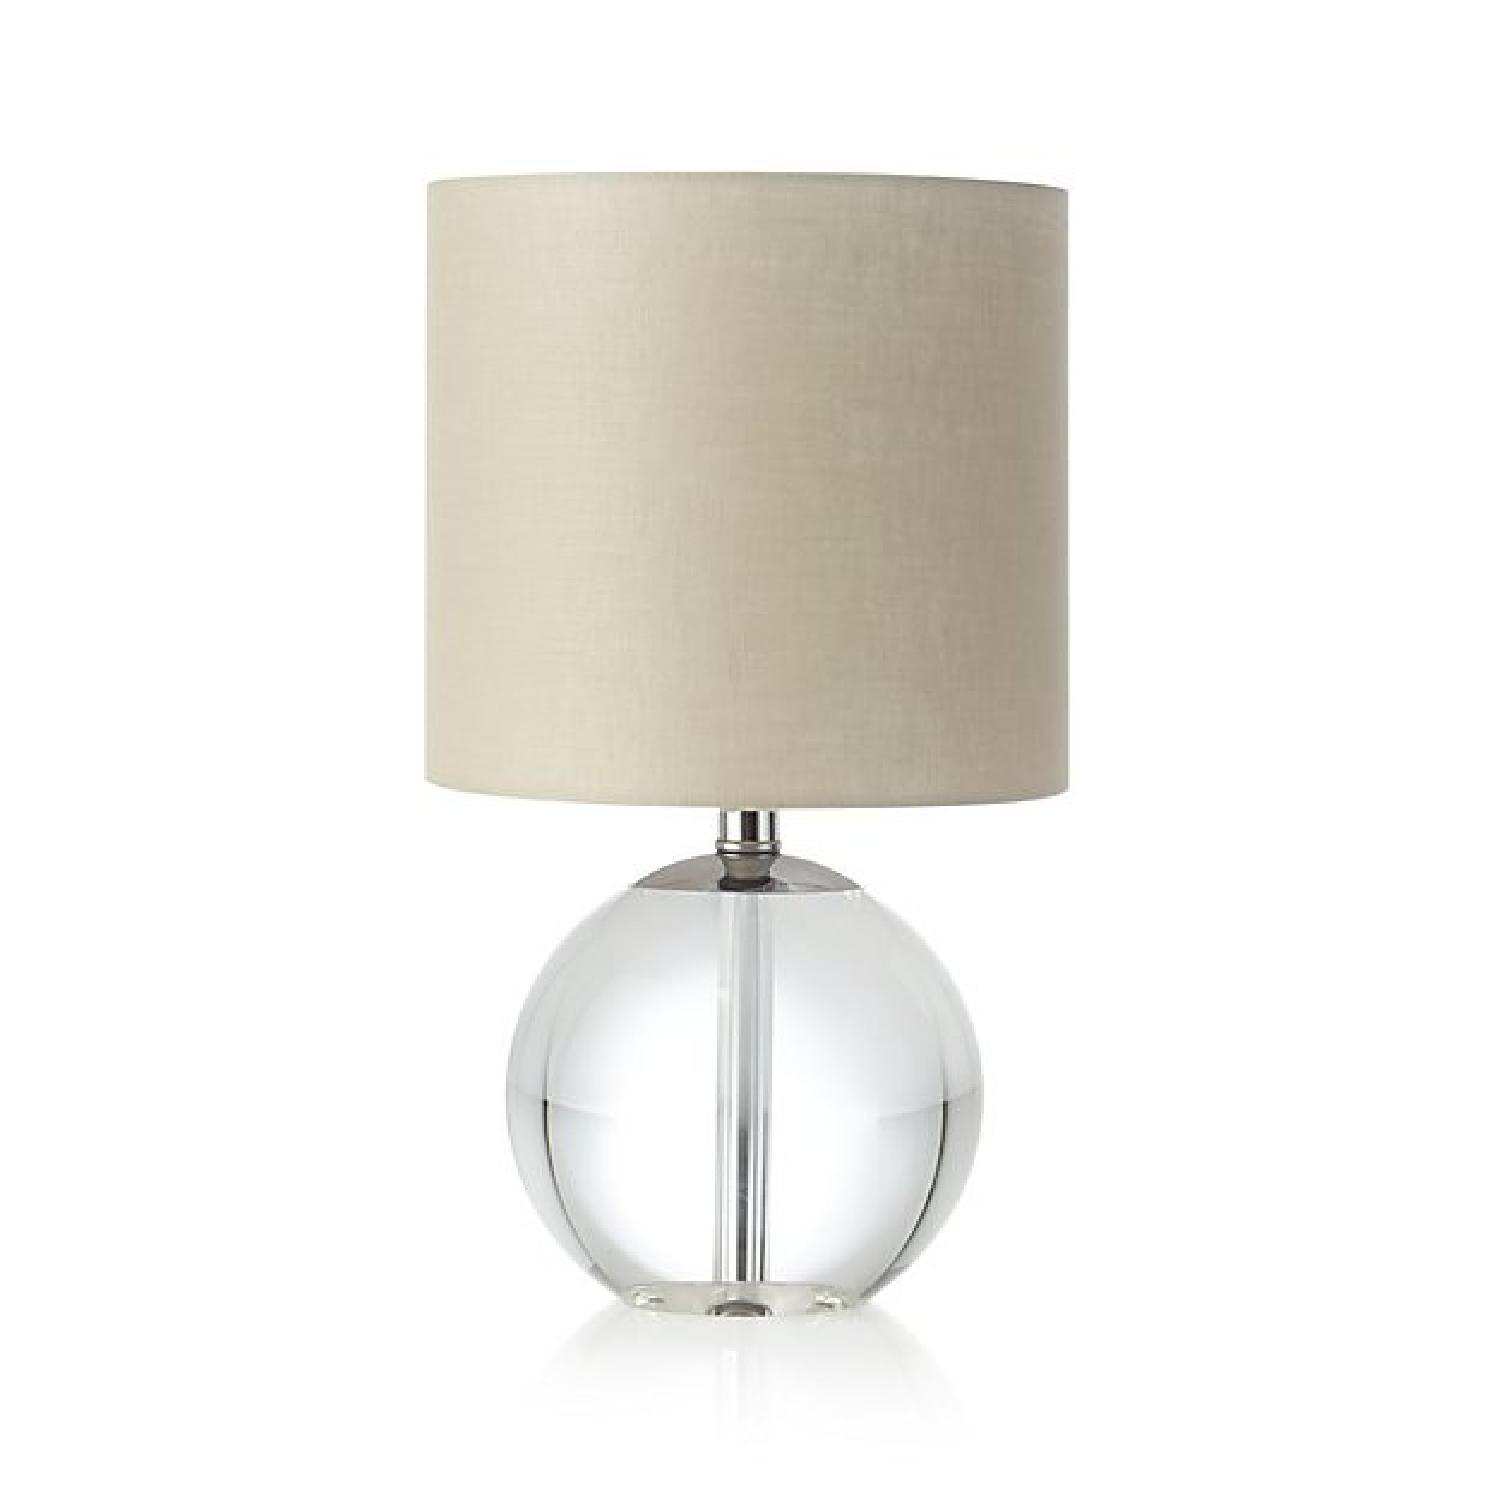 Crate & Barrel Sybil Globe Crystal Table Lamps